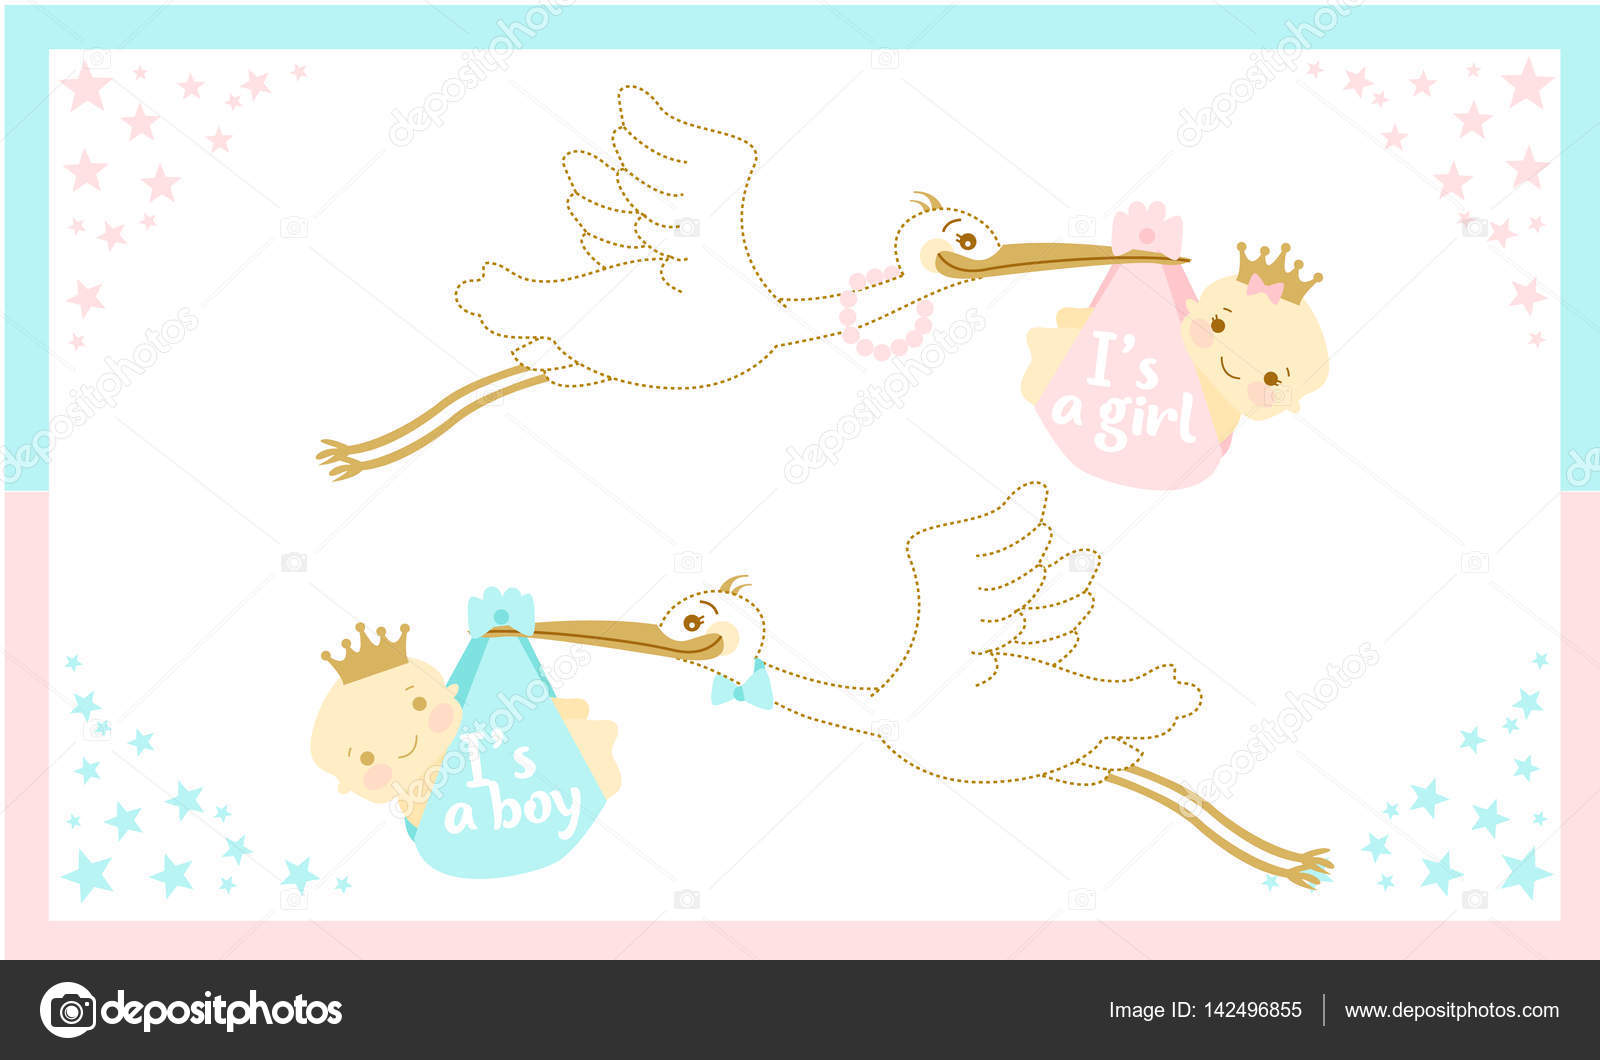 Baby Shower Stork Clipart ~ Baby shower card with stork carrying a baby. u2014 stock vector